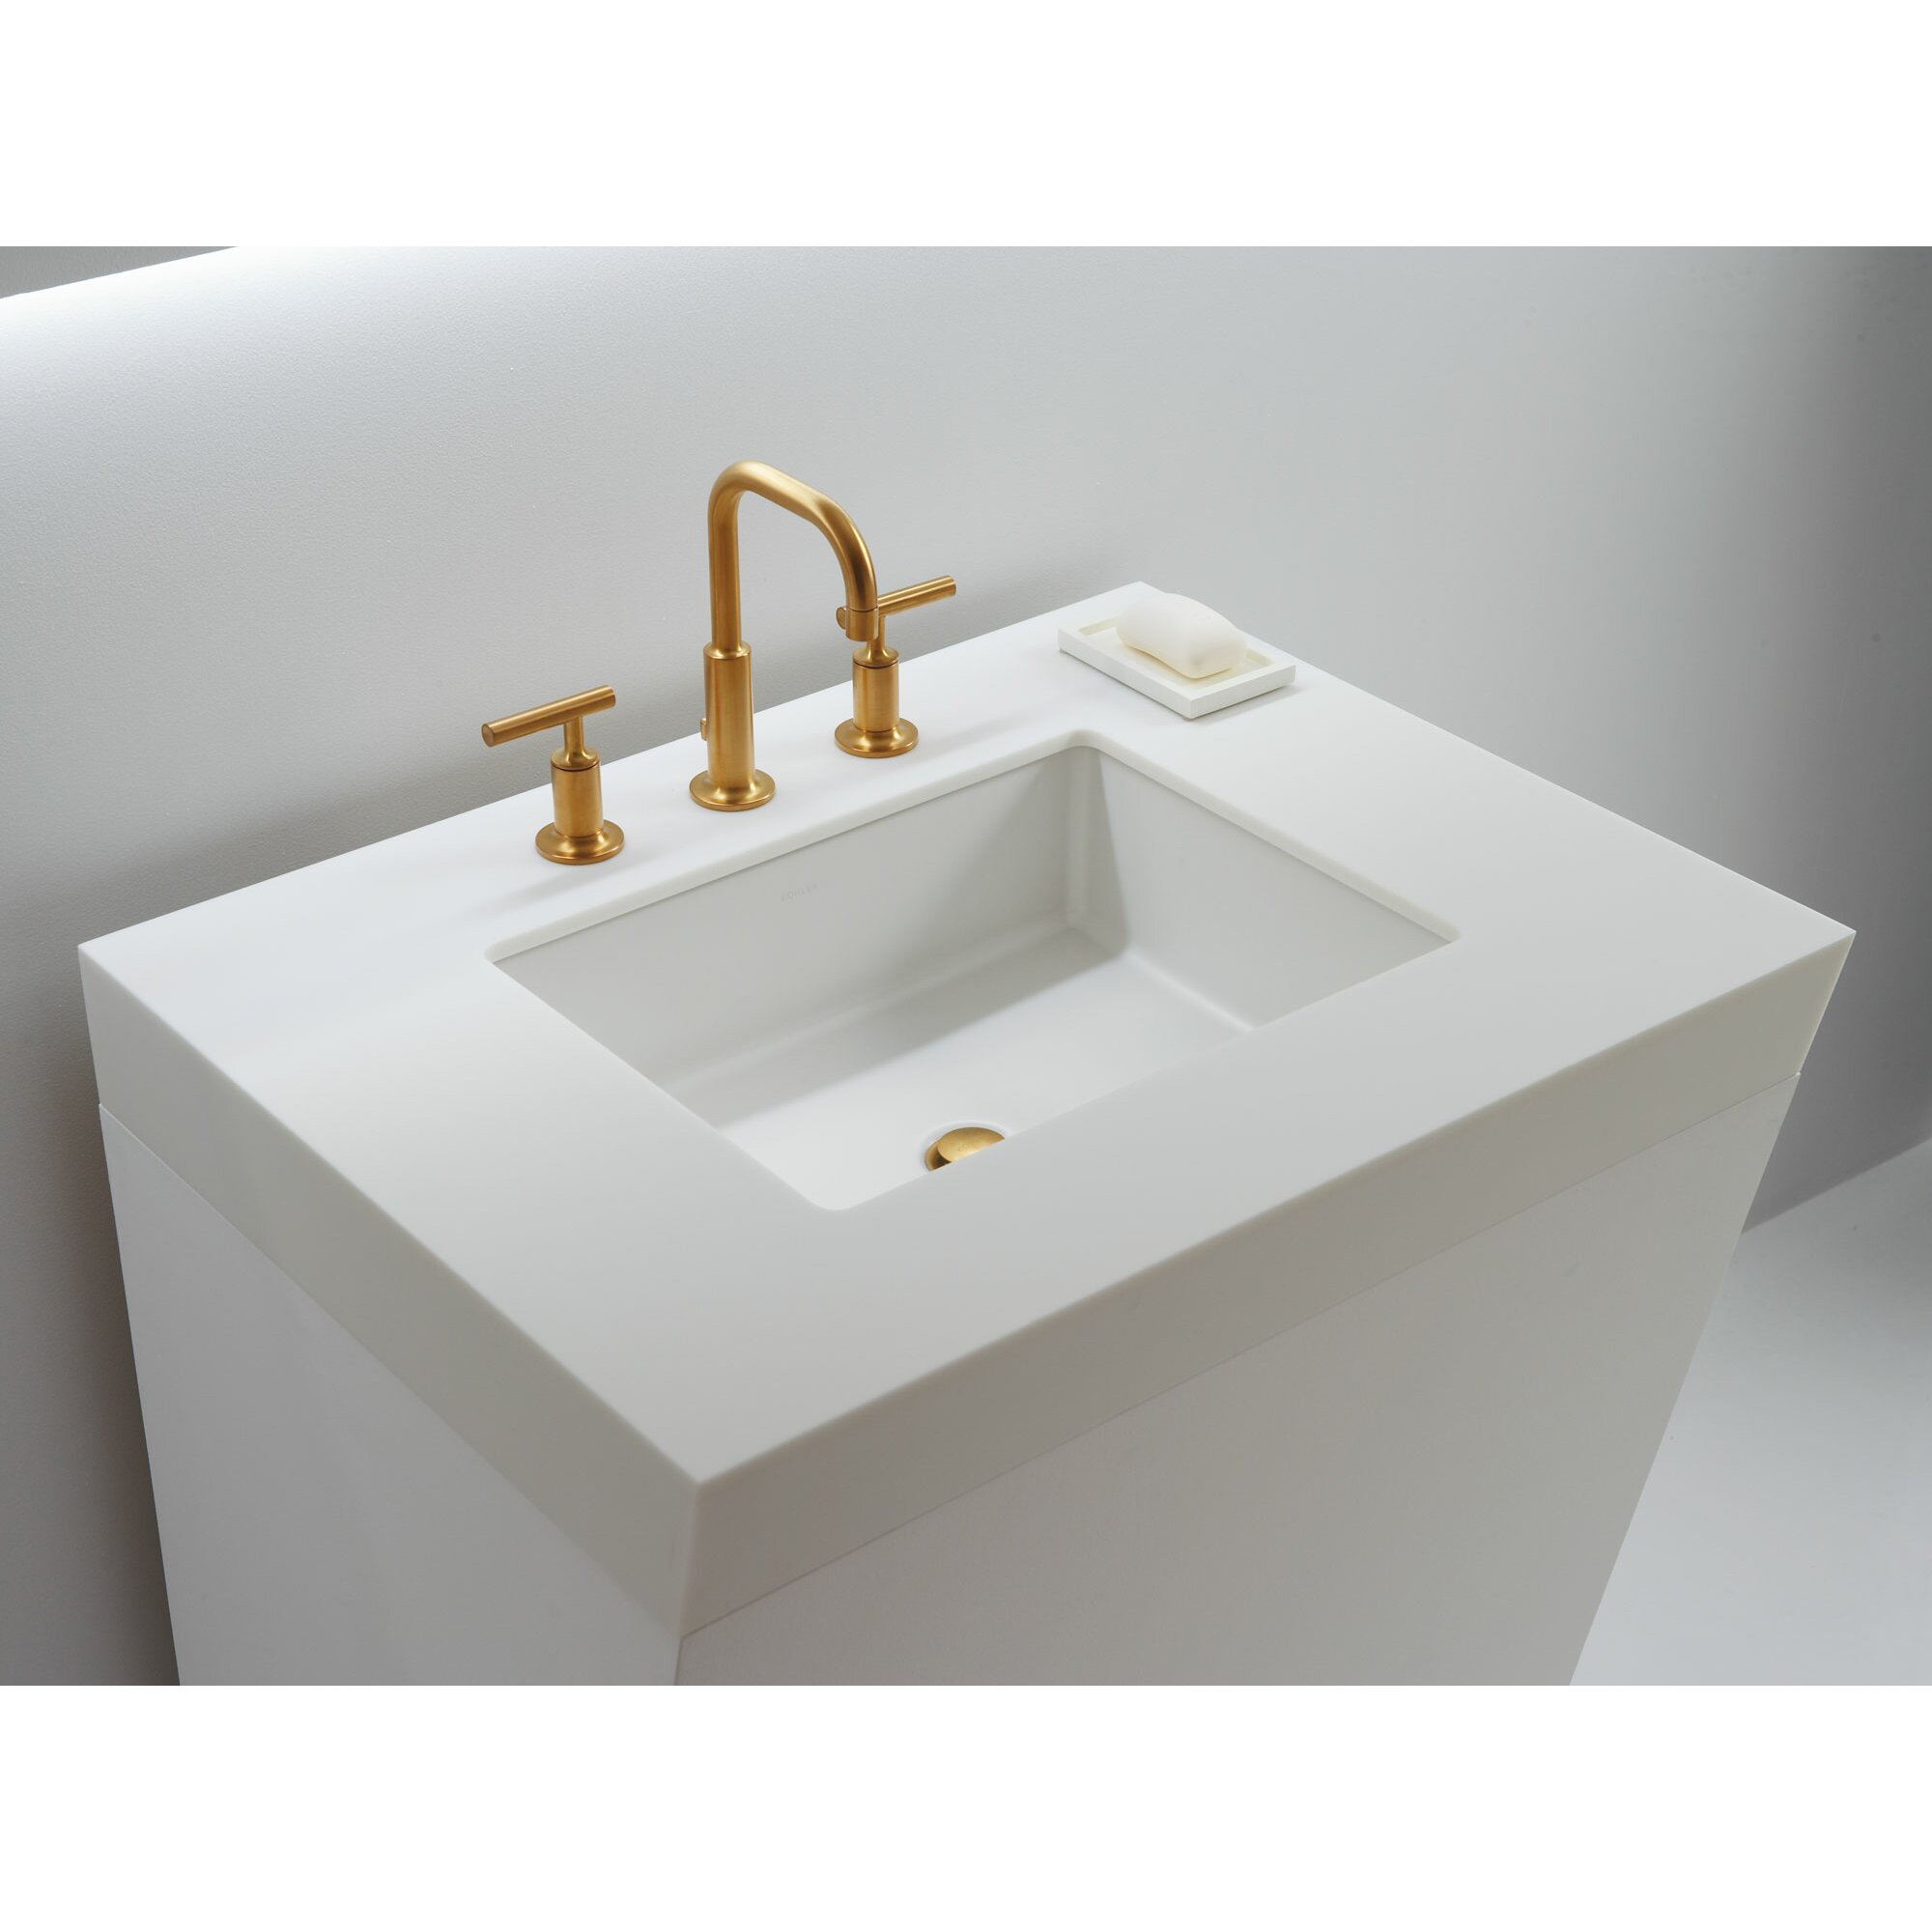 kohler undermount bathroom sink kohler verticyl rectangular undermount bathroom sink with 19038